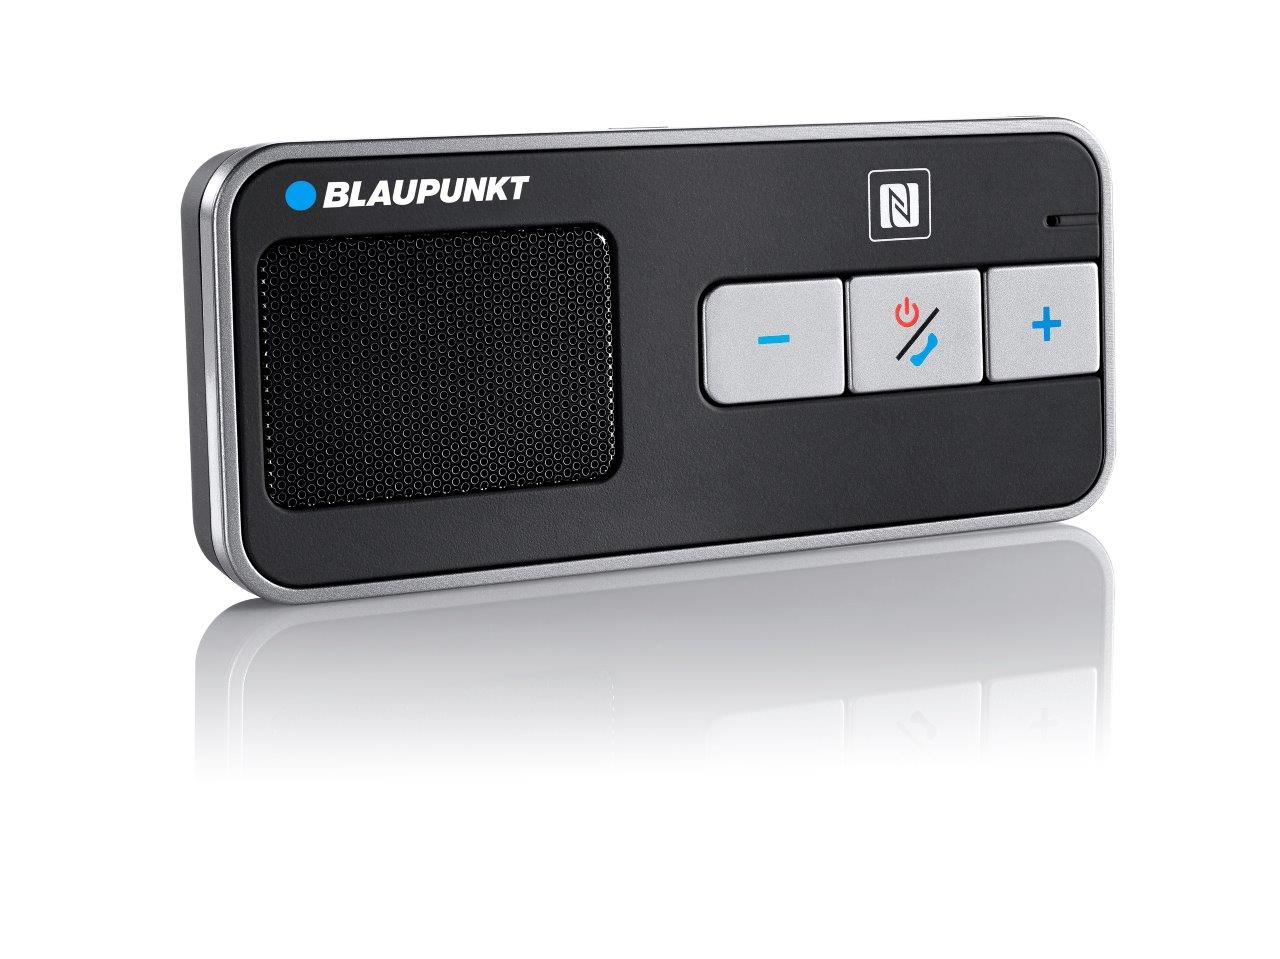 blaupunkt df114 kits mains libres en voiture bluetooth t l phone mobile audio. Black Bedroom Furniture Sets. Home Design Ideas